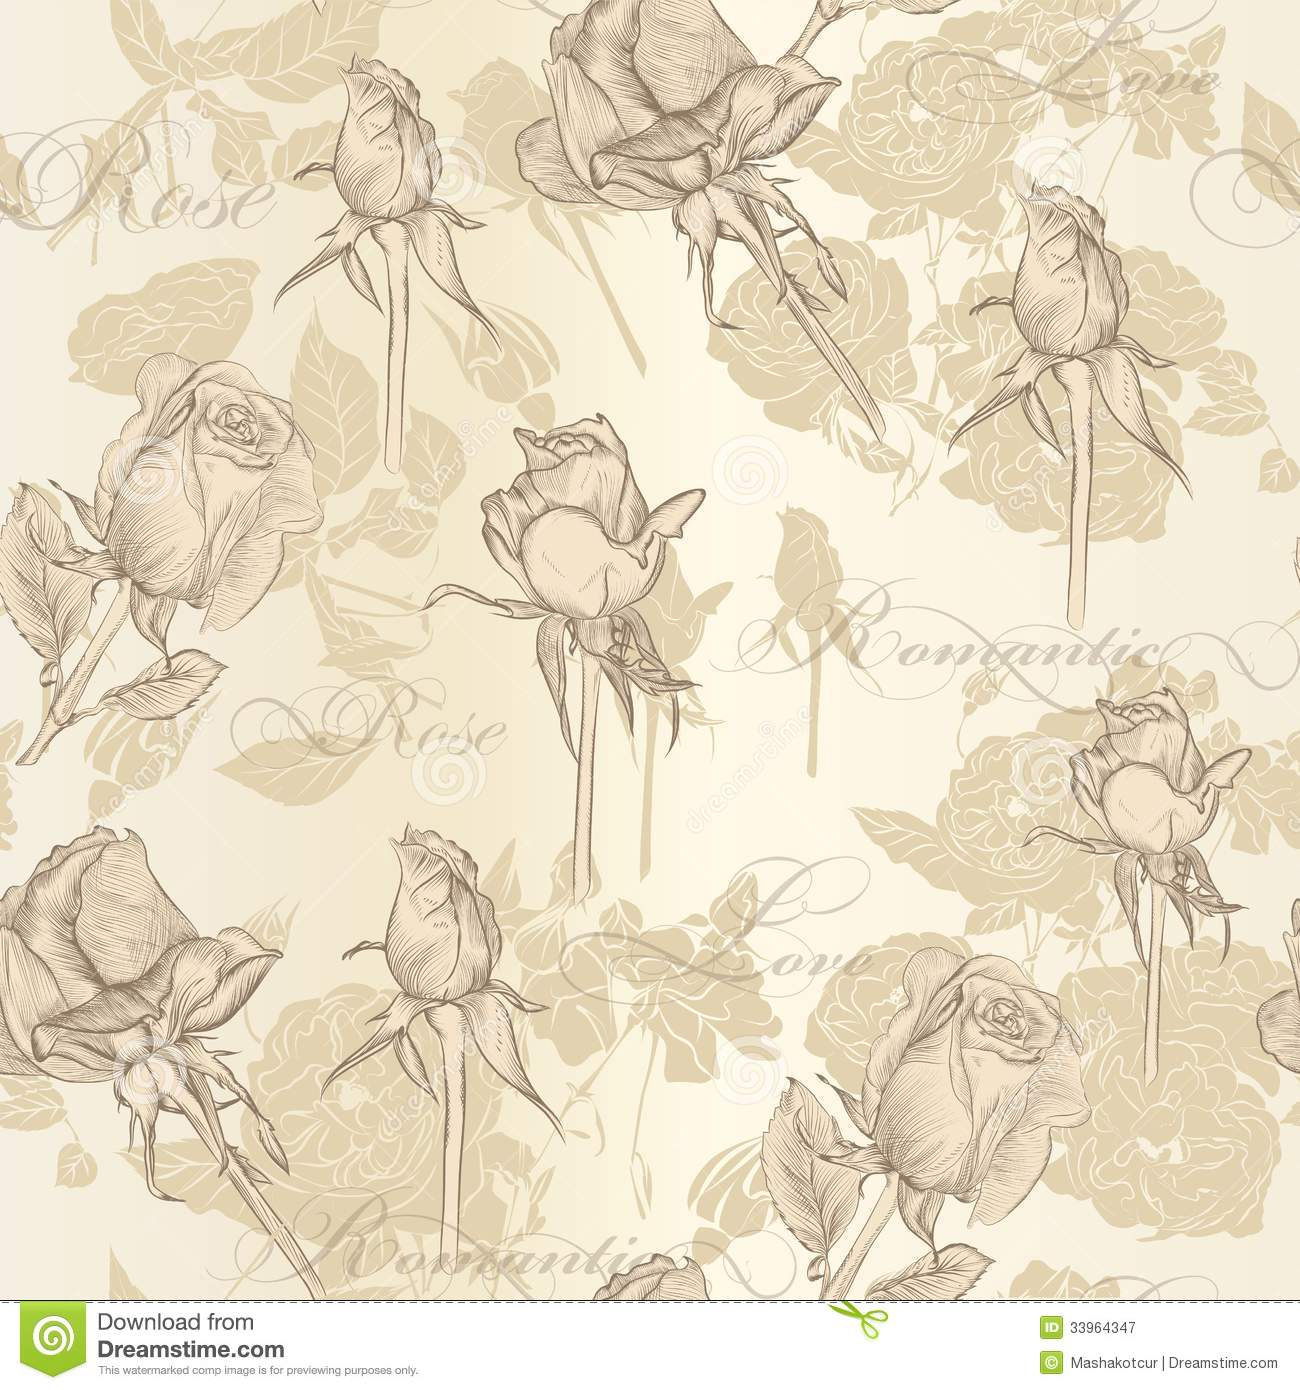 Vintage Style Wallpaper Seamless Vector Wallpaper With Roses In Vintage Style